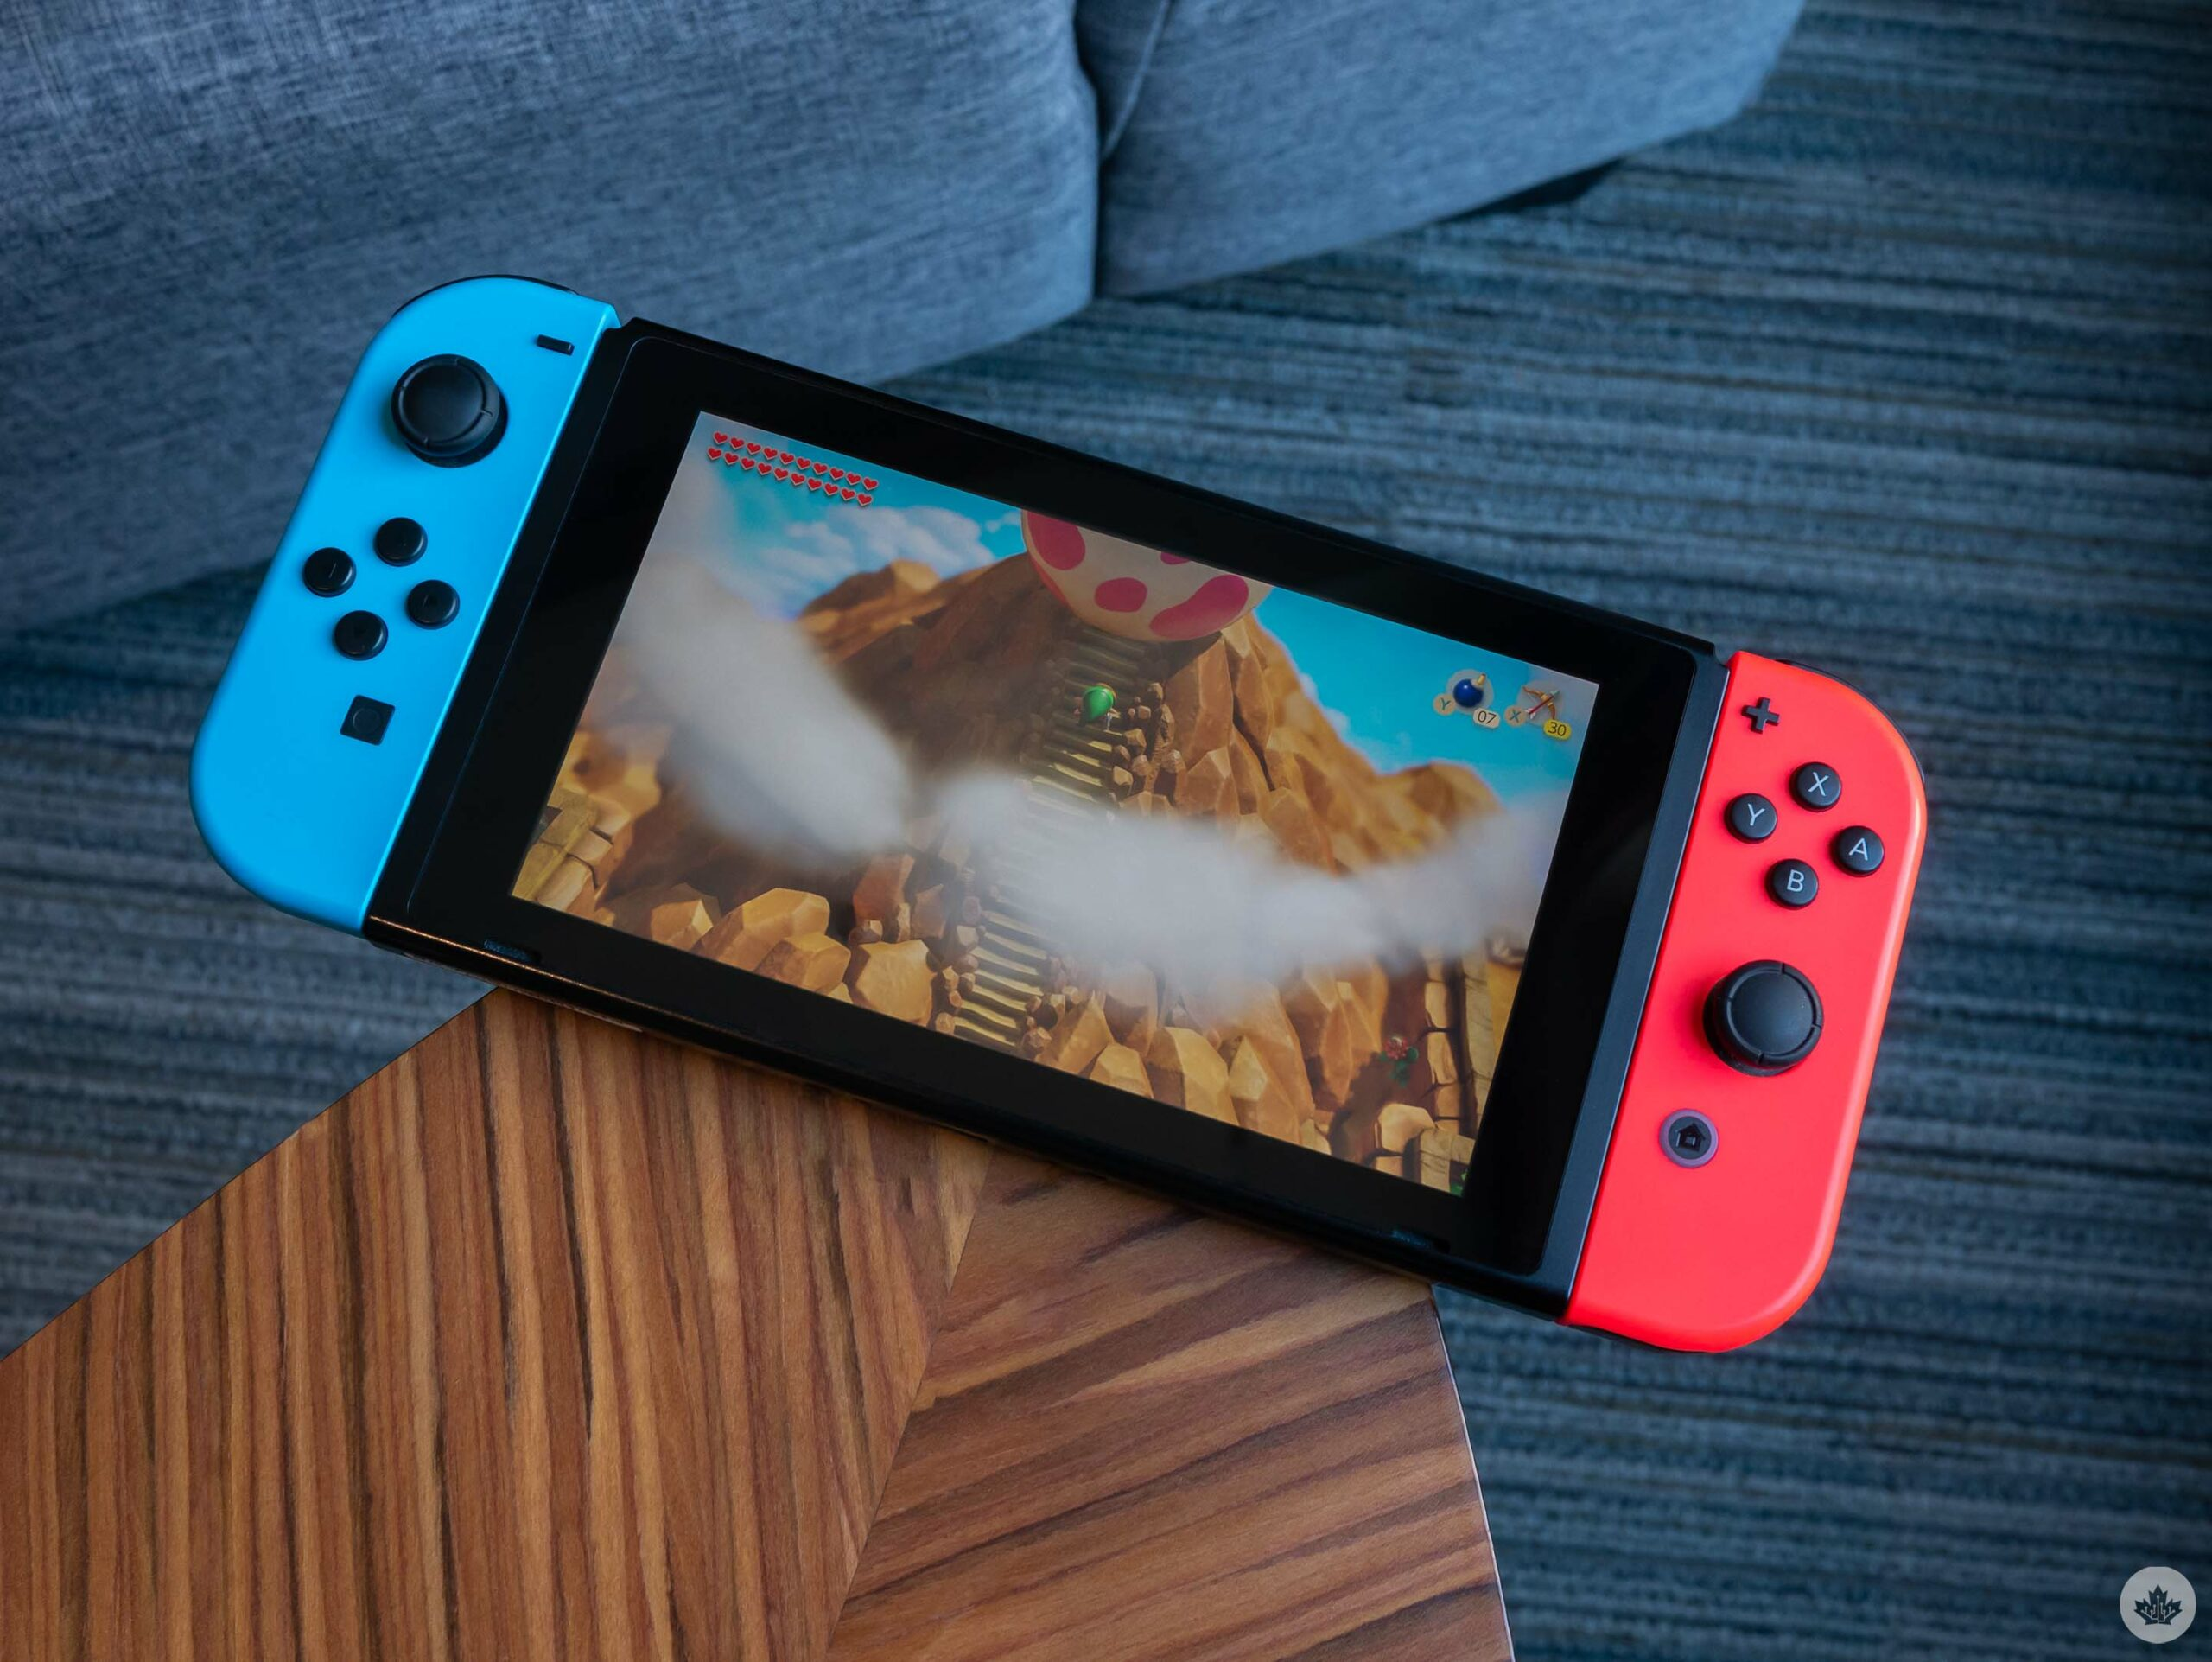 Switch red and blue Joy-Cons